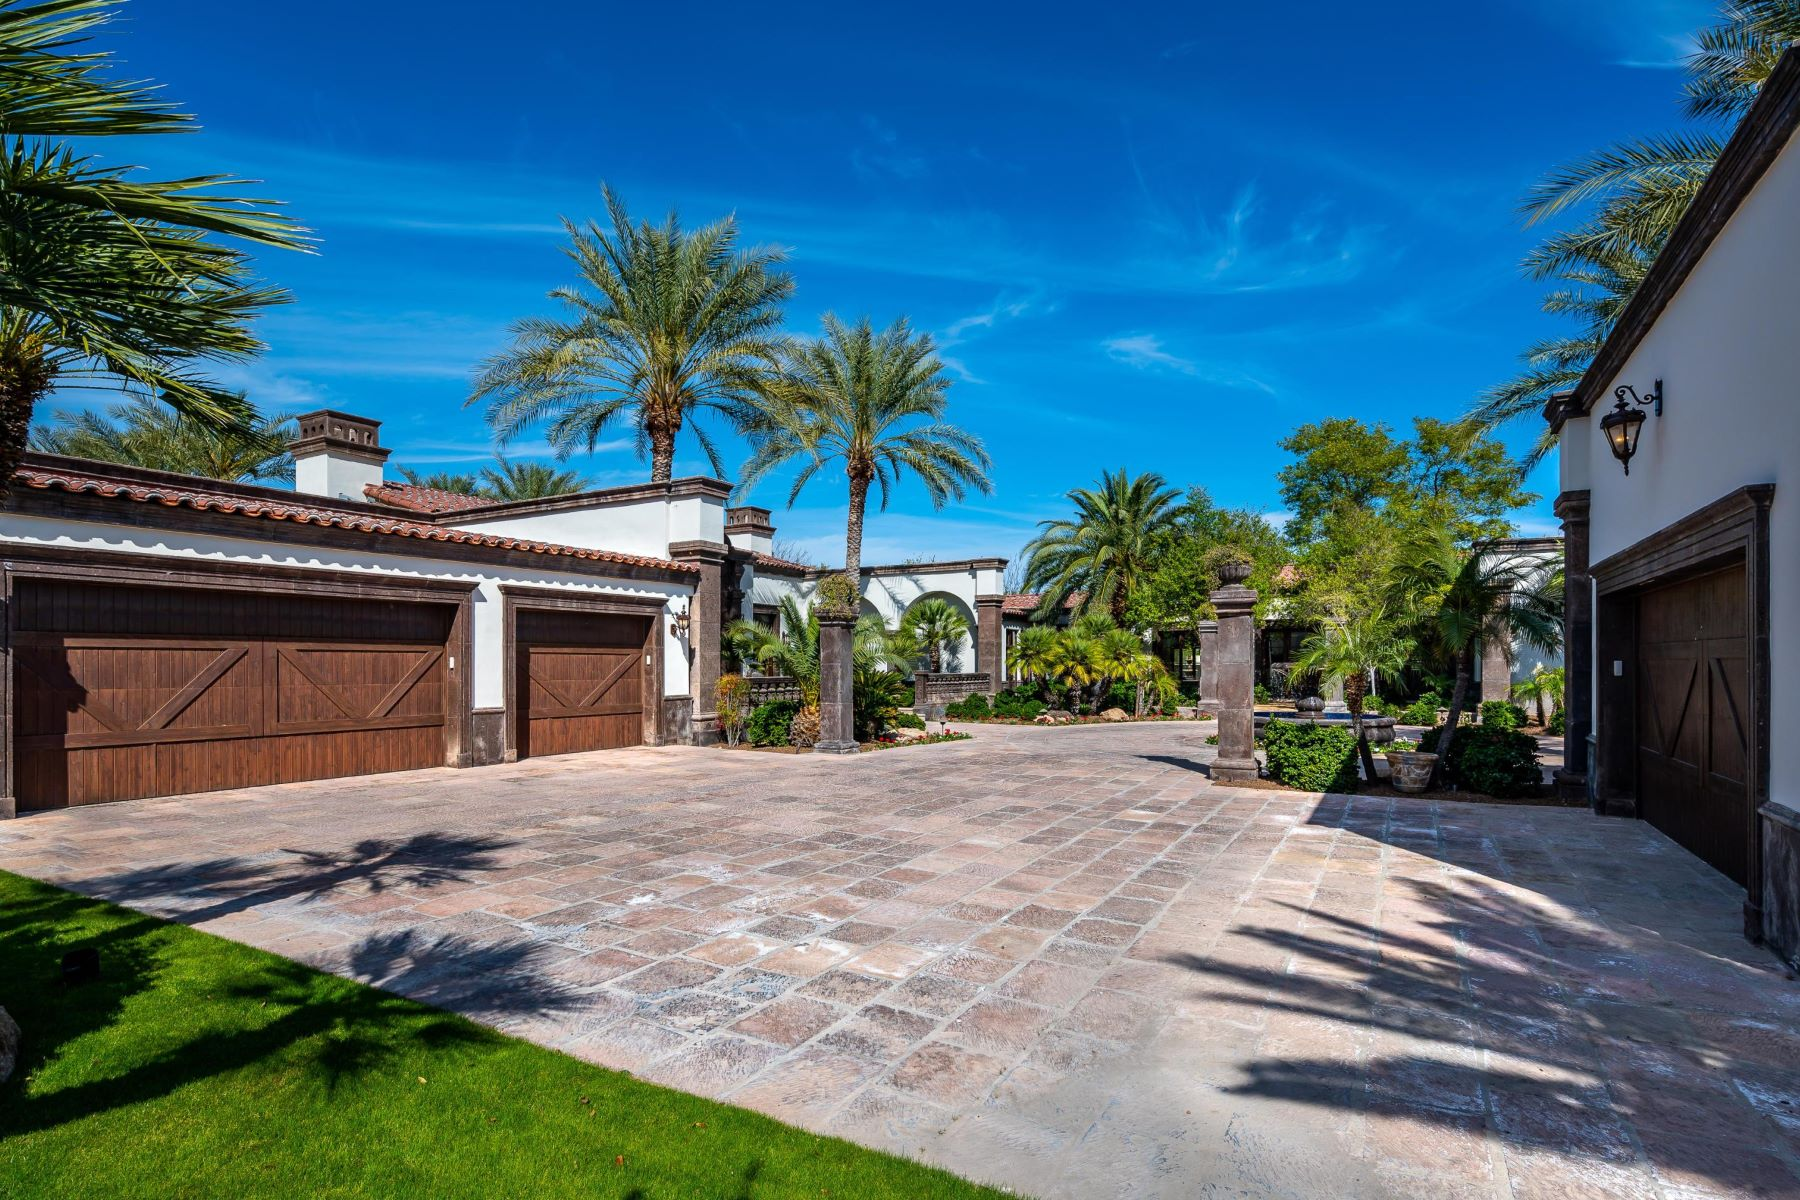 Additional photo for property listing at Judson 6684 E CACTUS WREN RD 天堂谷, 亚利桑那州 85253 美国